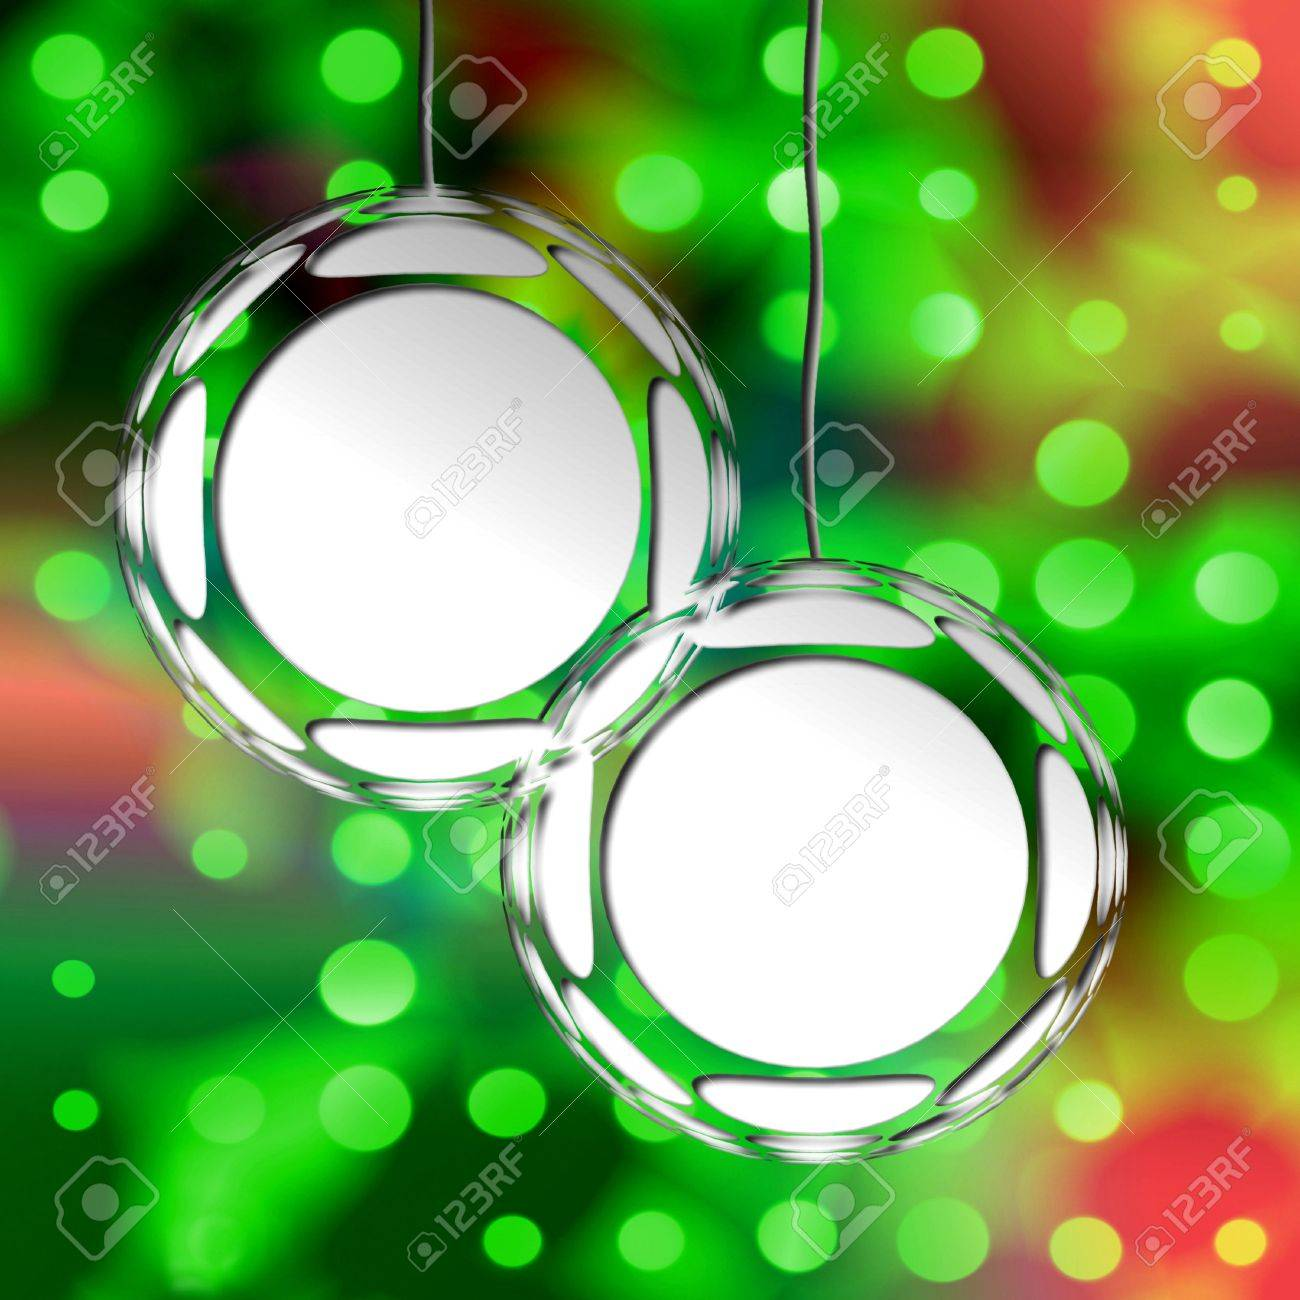 Christmas ornament frames - Empty Christmas Ornament Frames On Holiday Lights Background Ready For Your Photos Or Text Stock Photo